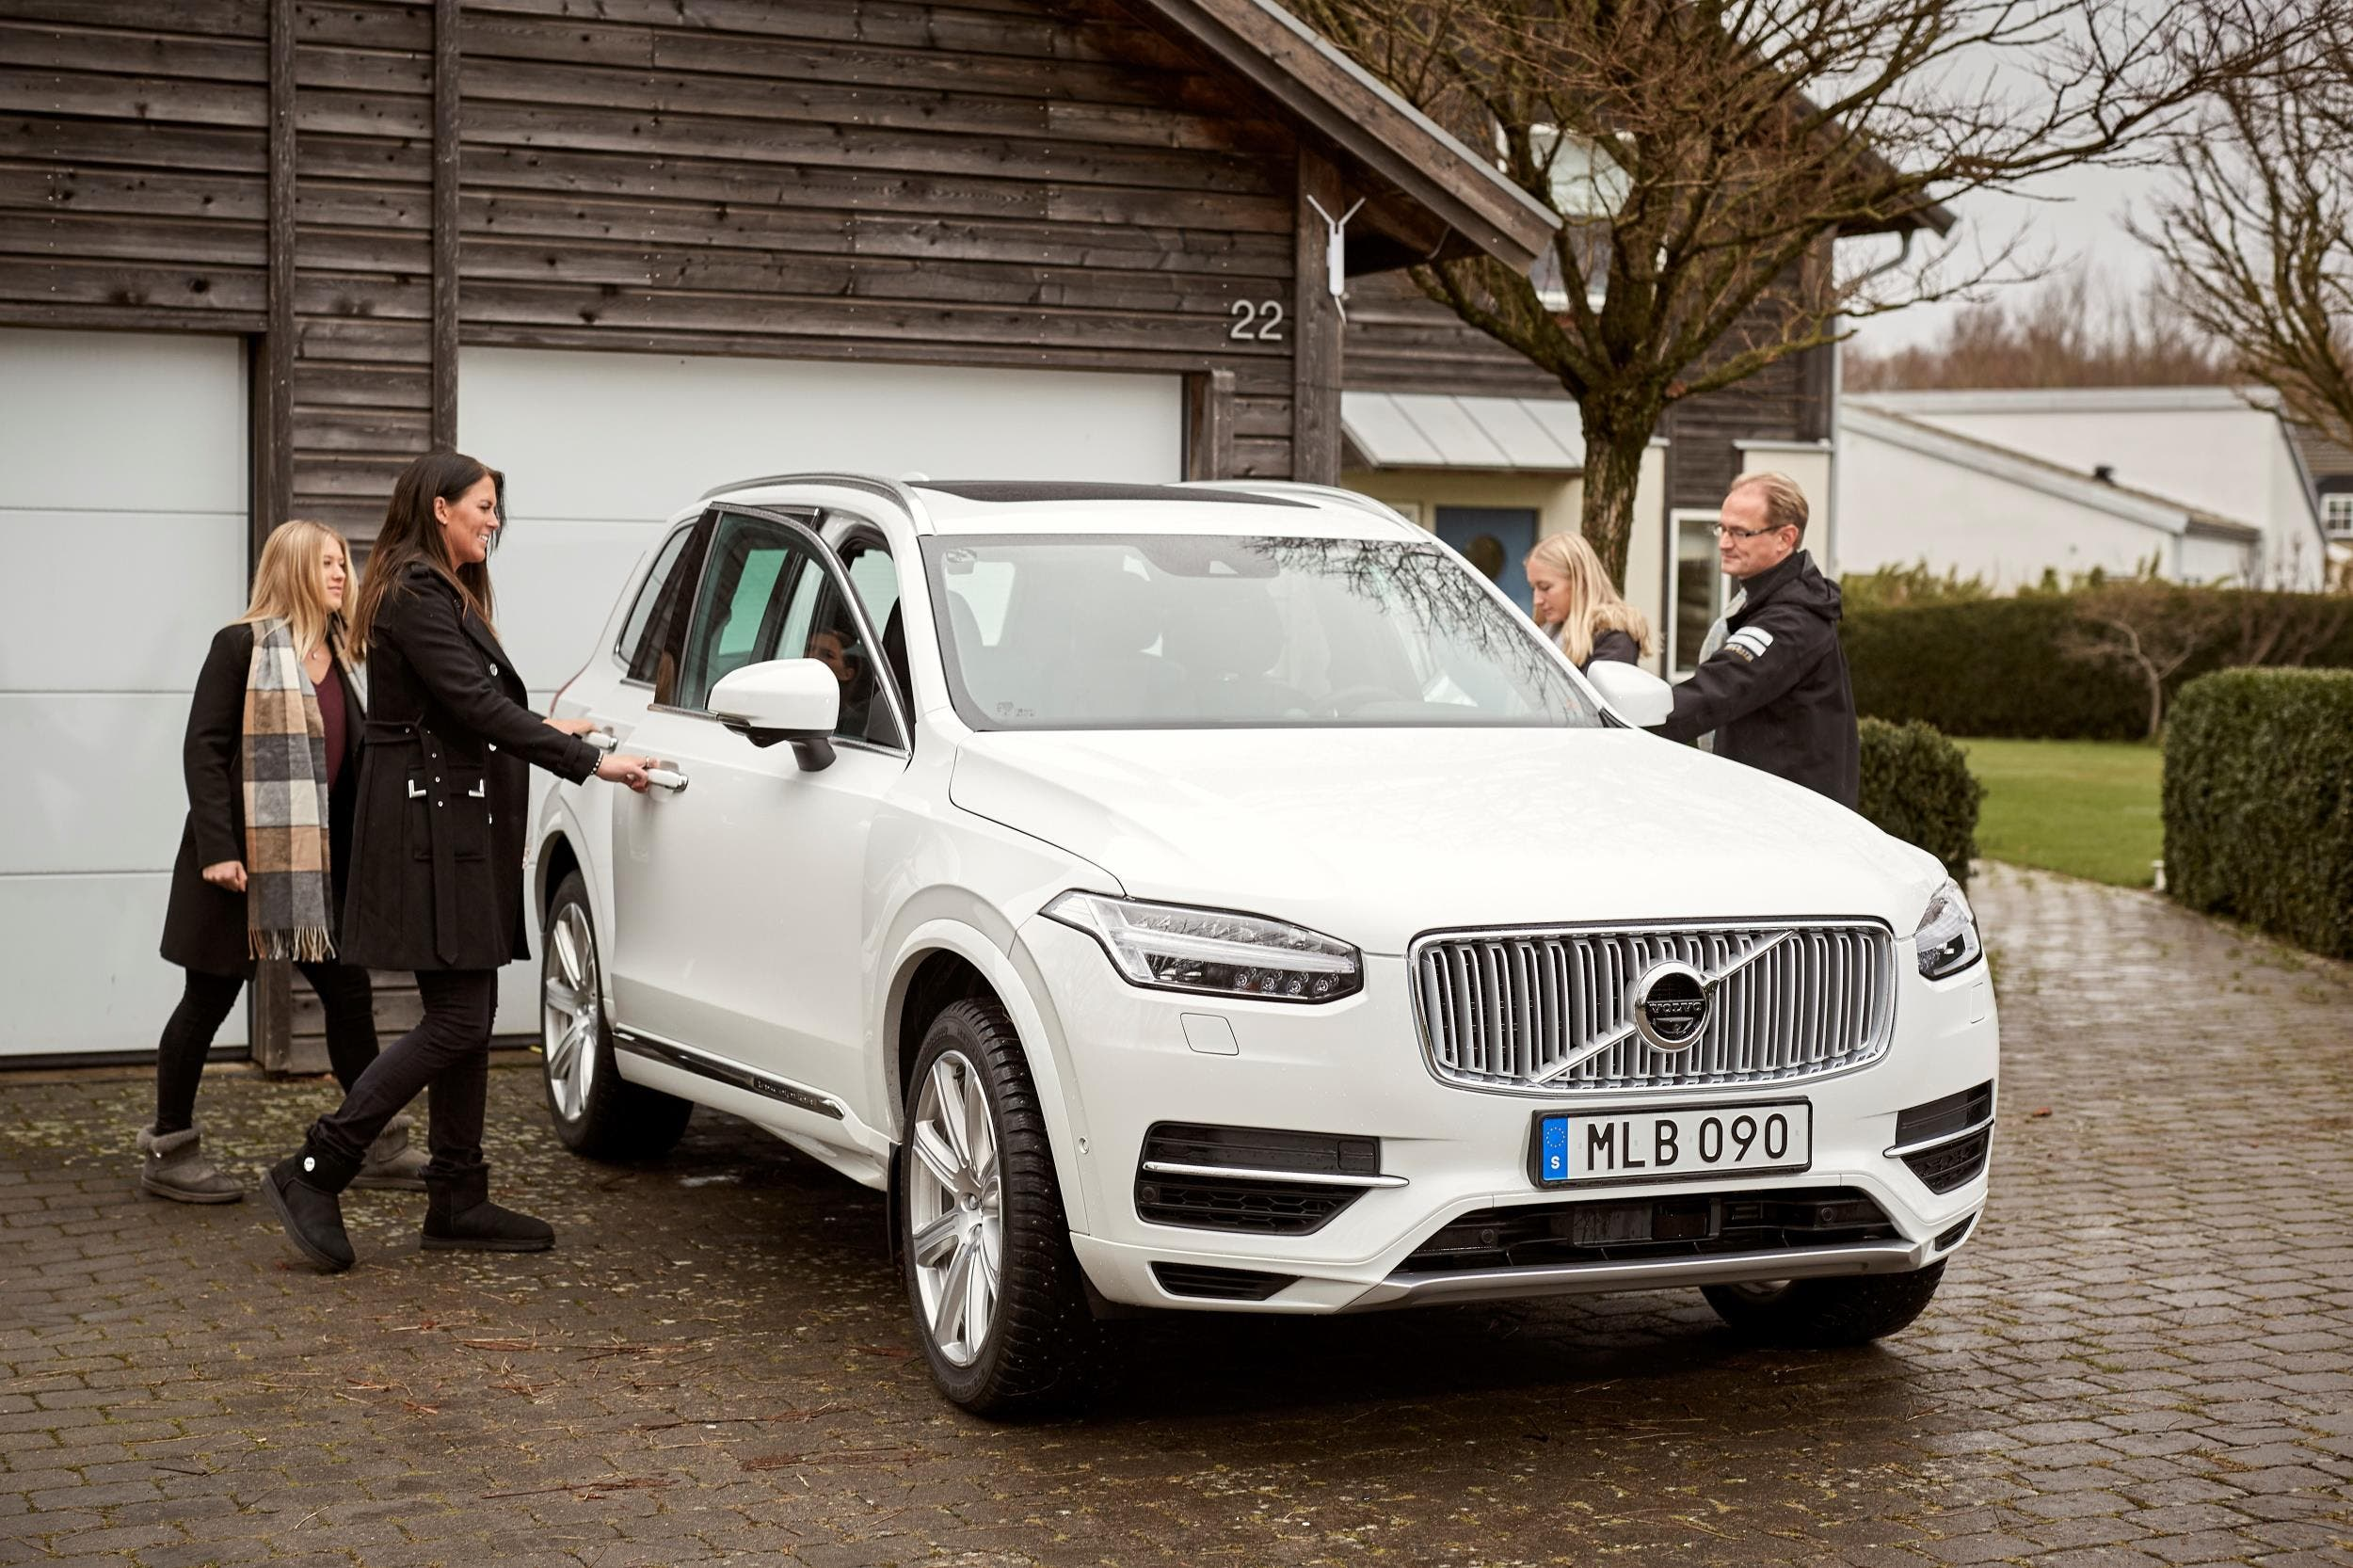 The 2018 Volvo Xc90 Awd T8 Phev Possesses A 19 Mile Real World All Electric Range As Determined By Us Epa 62 Mpge Combined Energy Fuel Efficiency